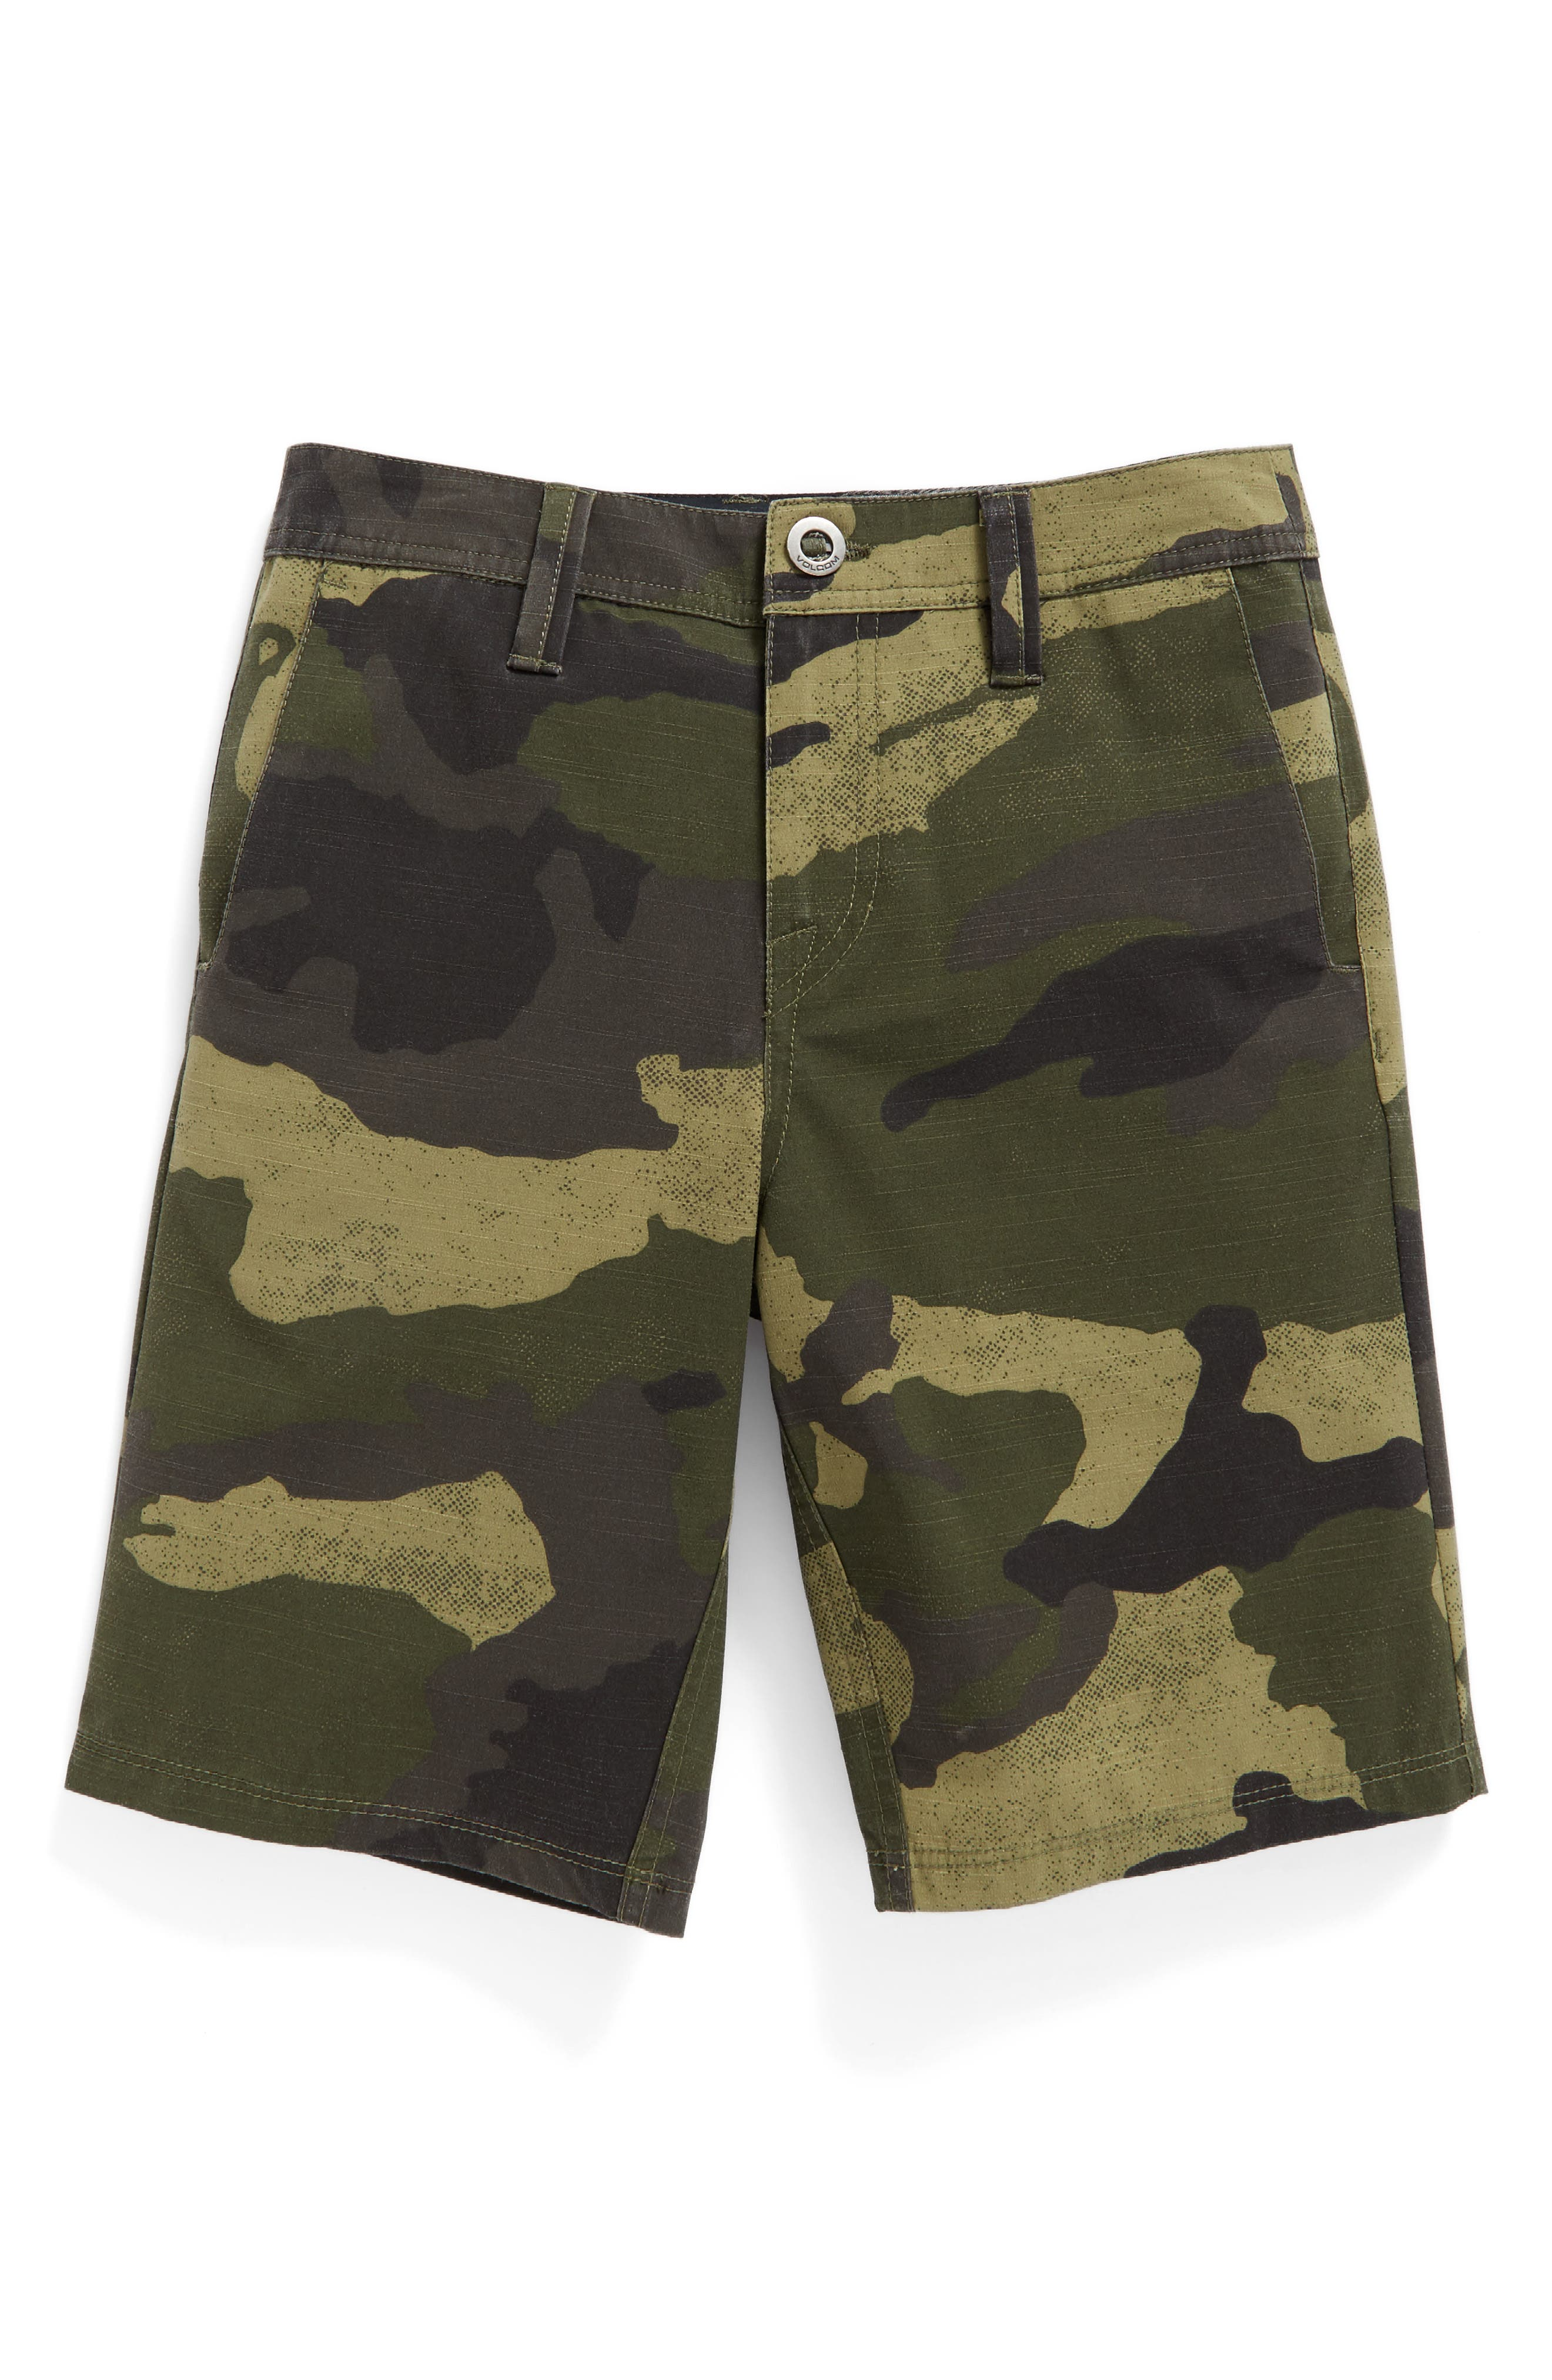 Camo Hybrid Shorts,                             Main thumbnail 1, color,                             300